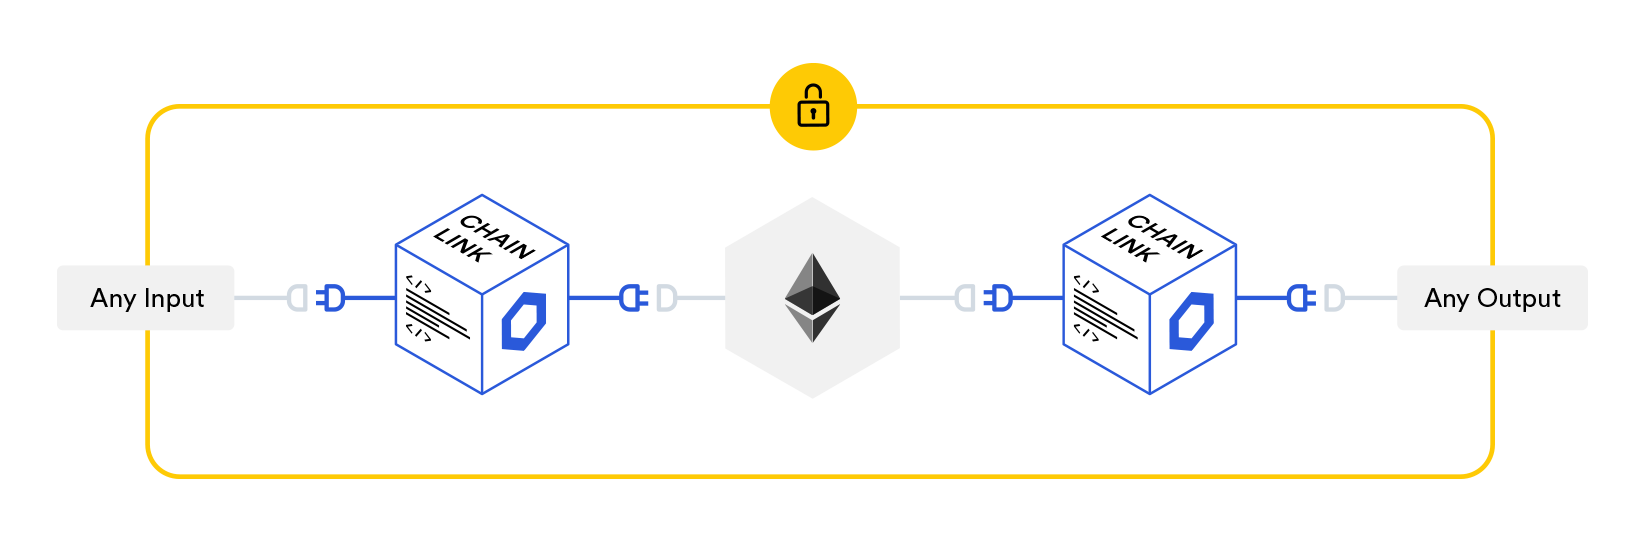 "The Chainlink node is middleware, operating between the blockchain and external data. More information on our architecture is available <a href=""https://docs.chain.link/v1.0/docs/architecture-overview"" target=""_blank"">here</a>."